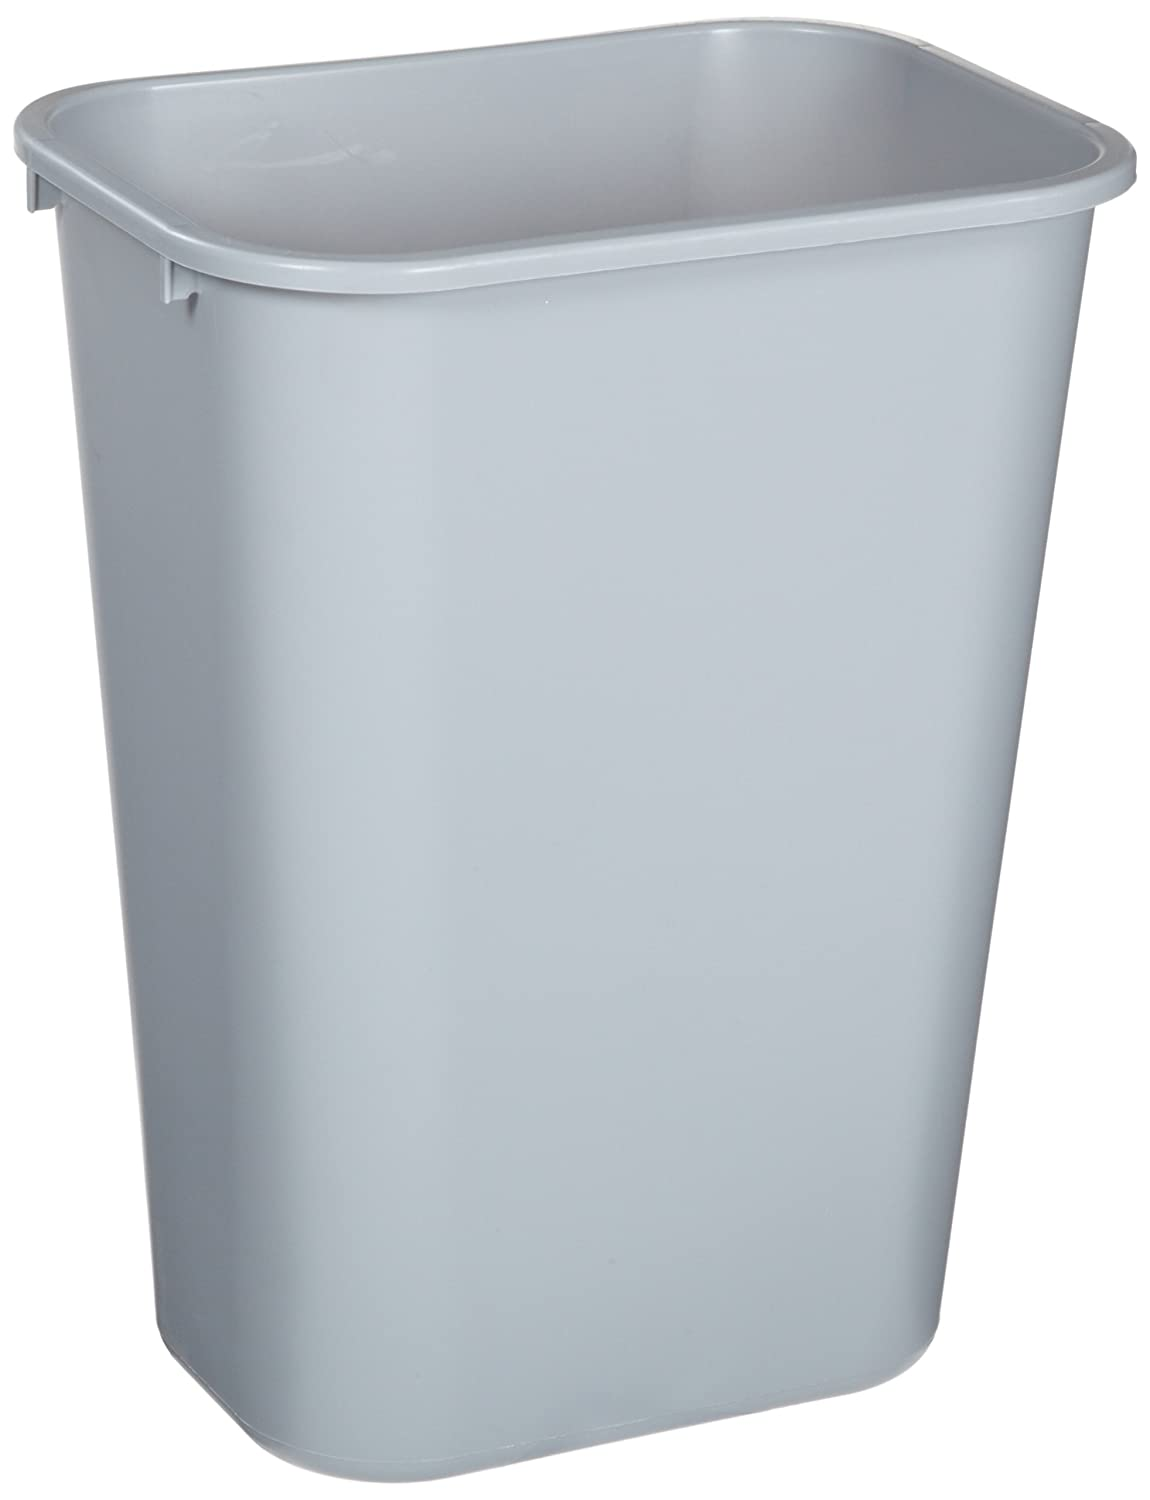 amazing Standard Kitchen Garbage Can Size #3: Rubbermaid Commercial Deskside Trash Can, 10 Gallon, Gray (FG295700GRAY): Waste Bins: Amazon.com: Industrial u0026amp; Scientific